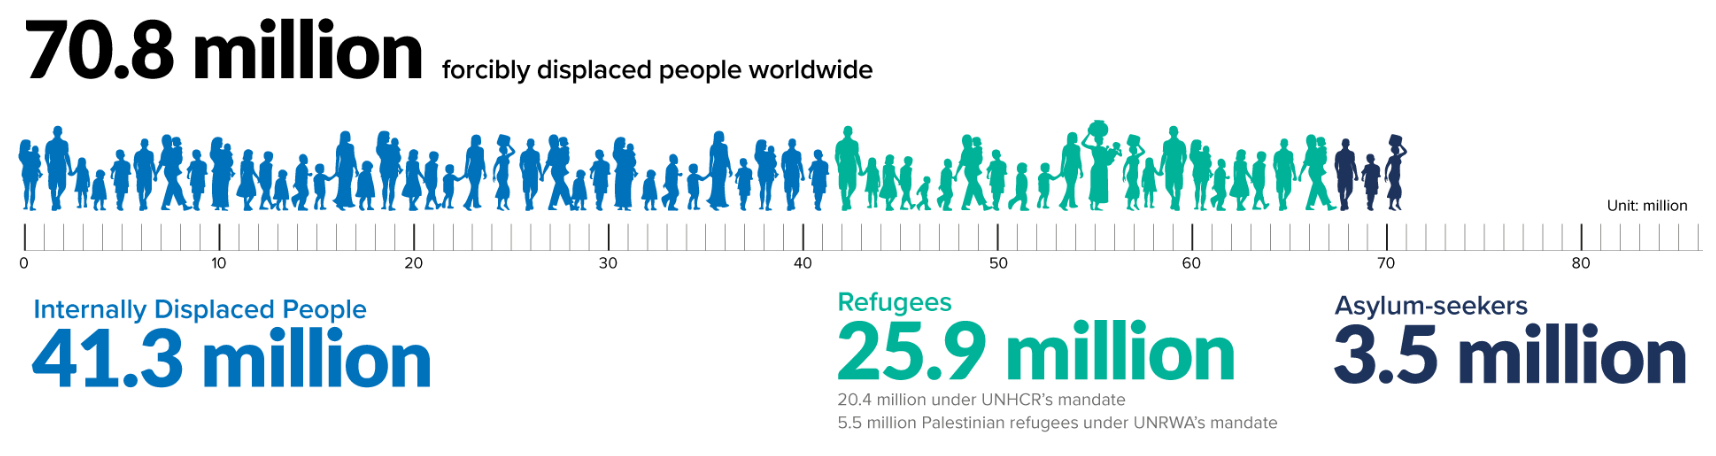 Out of the 70.8 million forcibly displaced people registered in 2018, 41.3 million are IDPs. (UNCHR)